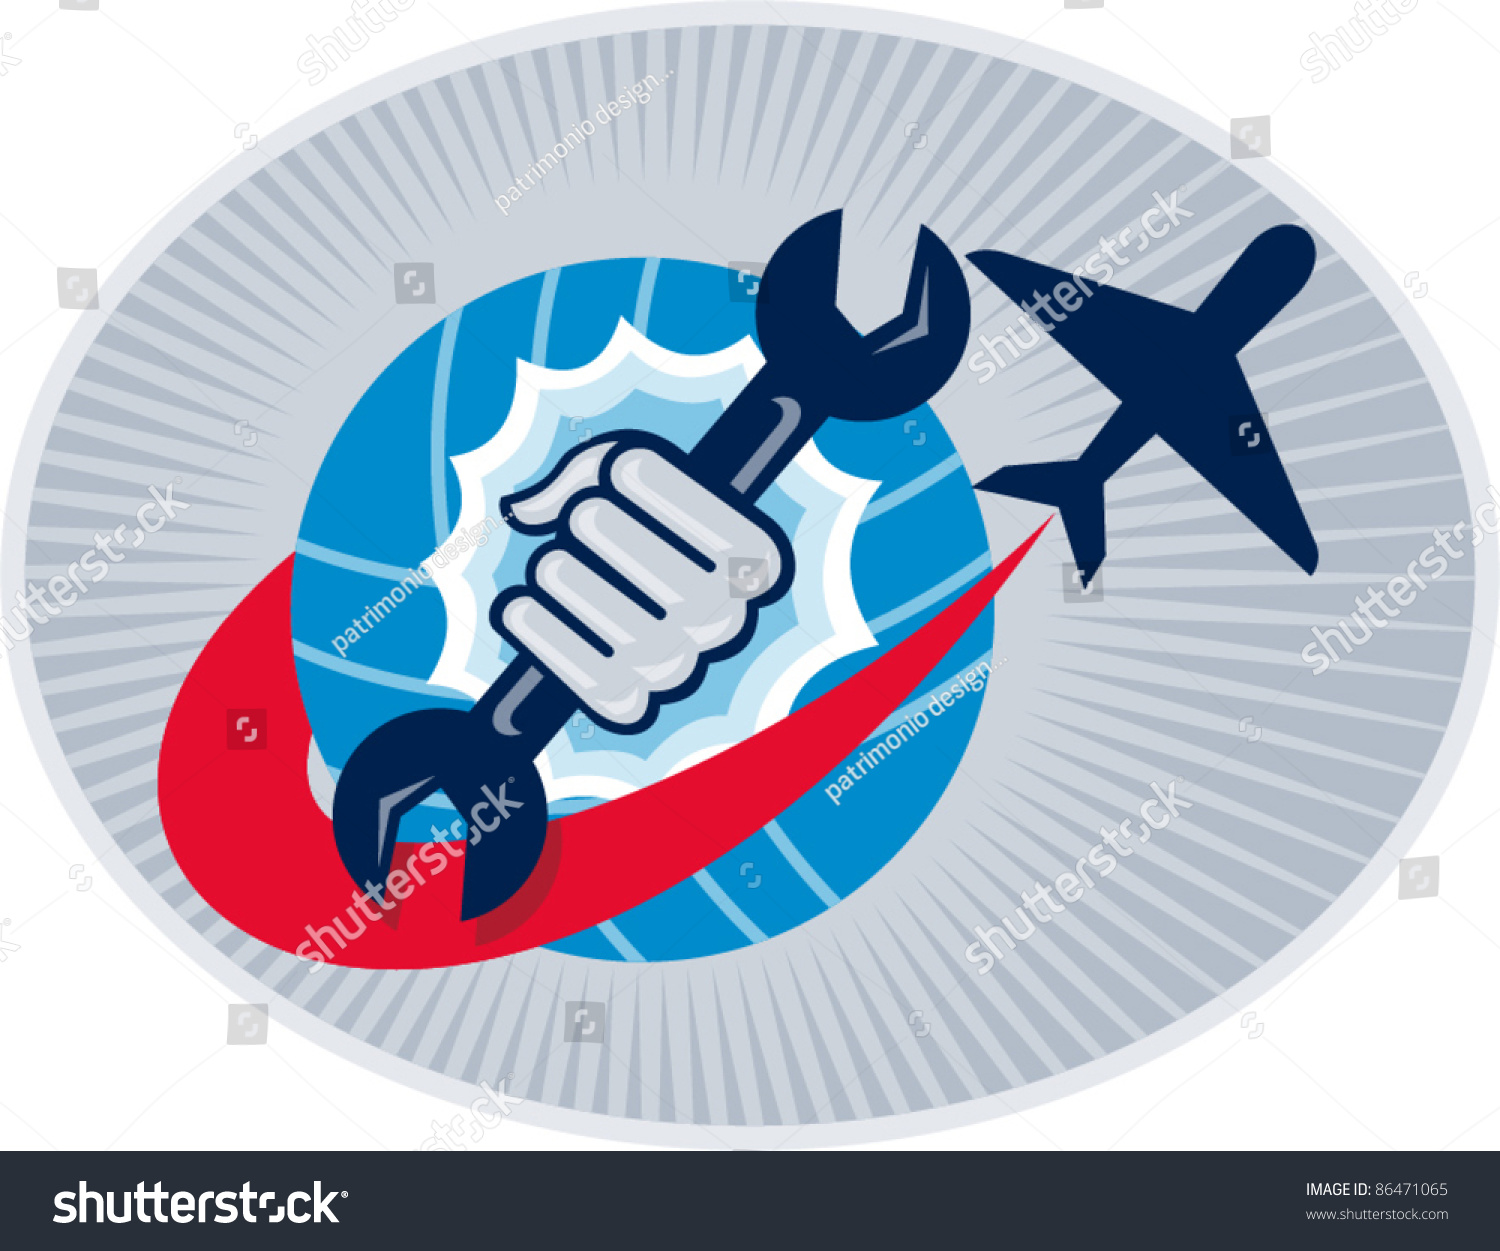 airplane mechanic clipart - photo #3